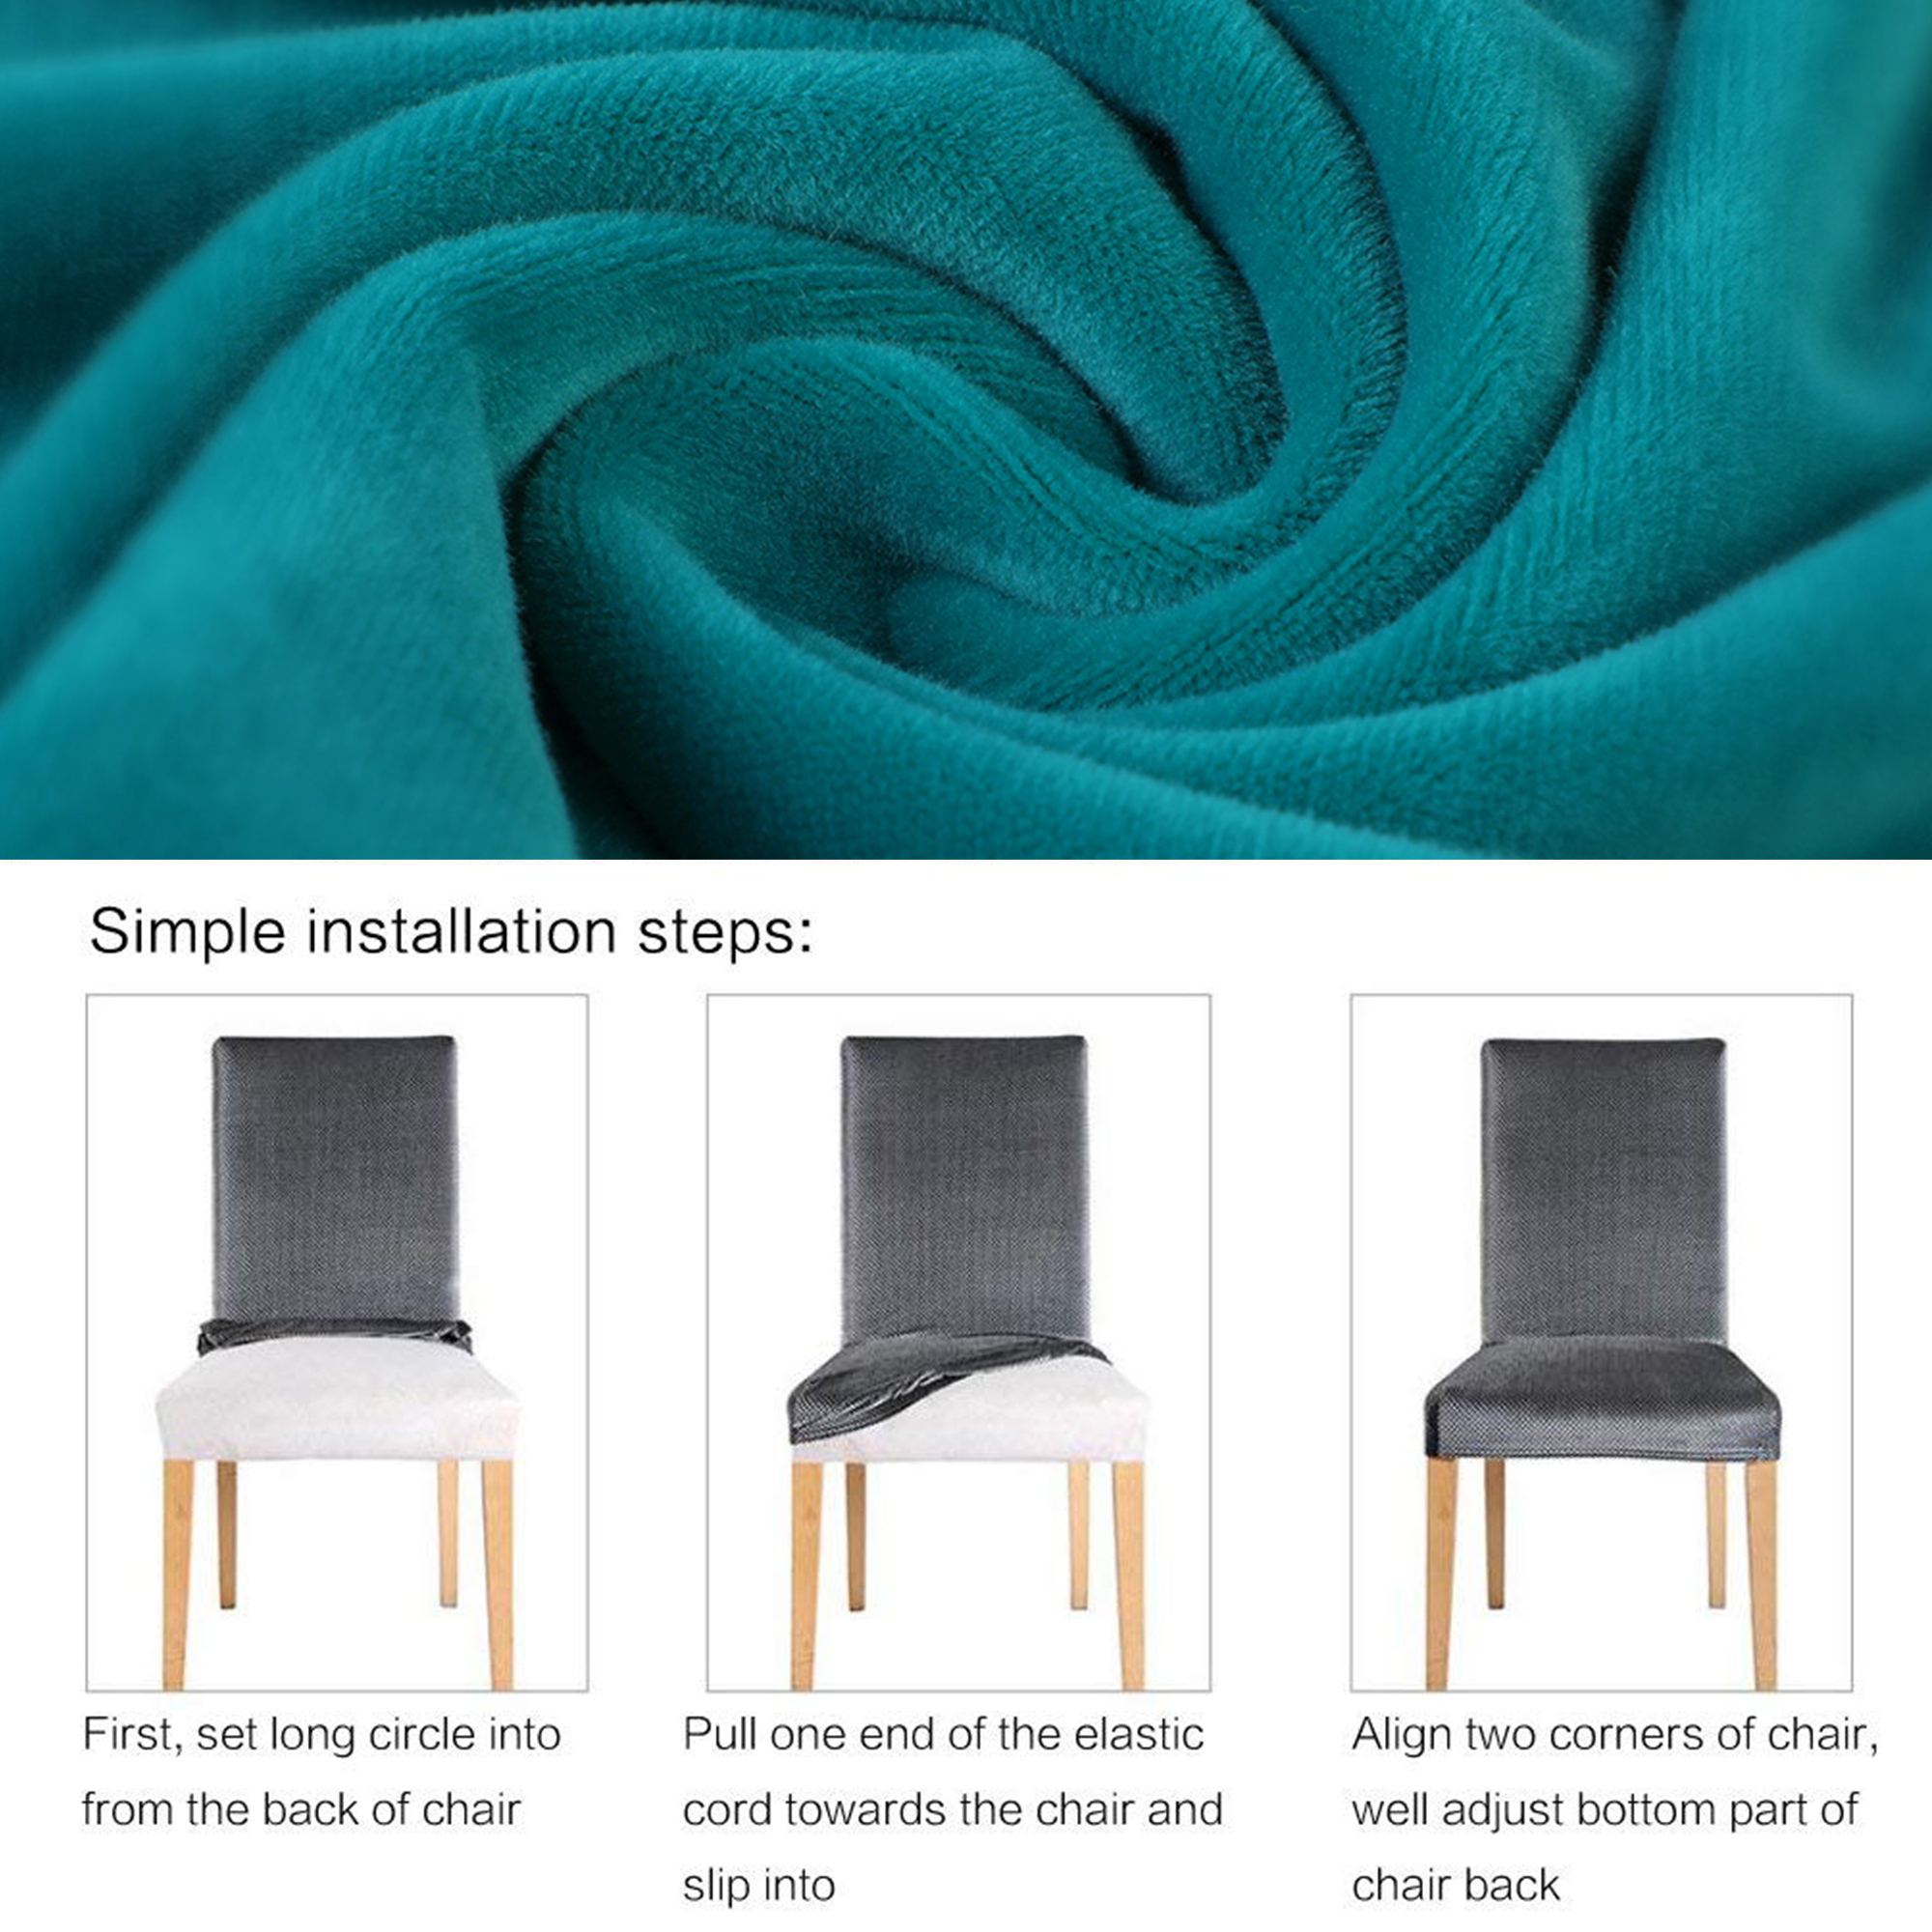 Superb Loose Armchair Covers Dining Chair Covers 1 2 4 6Pcs Wedding Andrewgaddart Wooden Chair Designs For Living Room Andrewgaddartcom